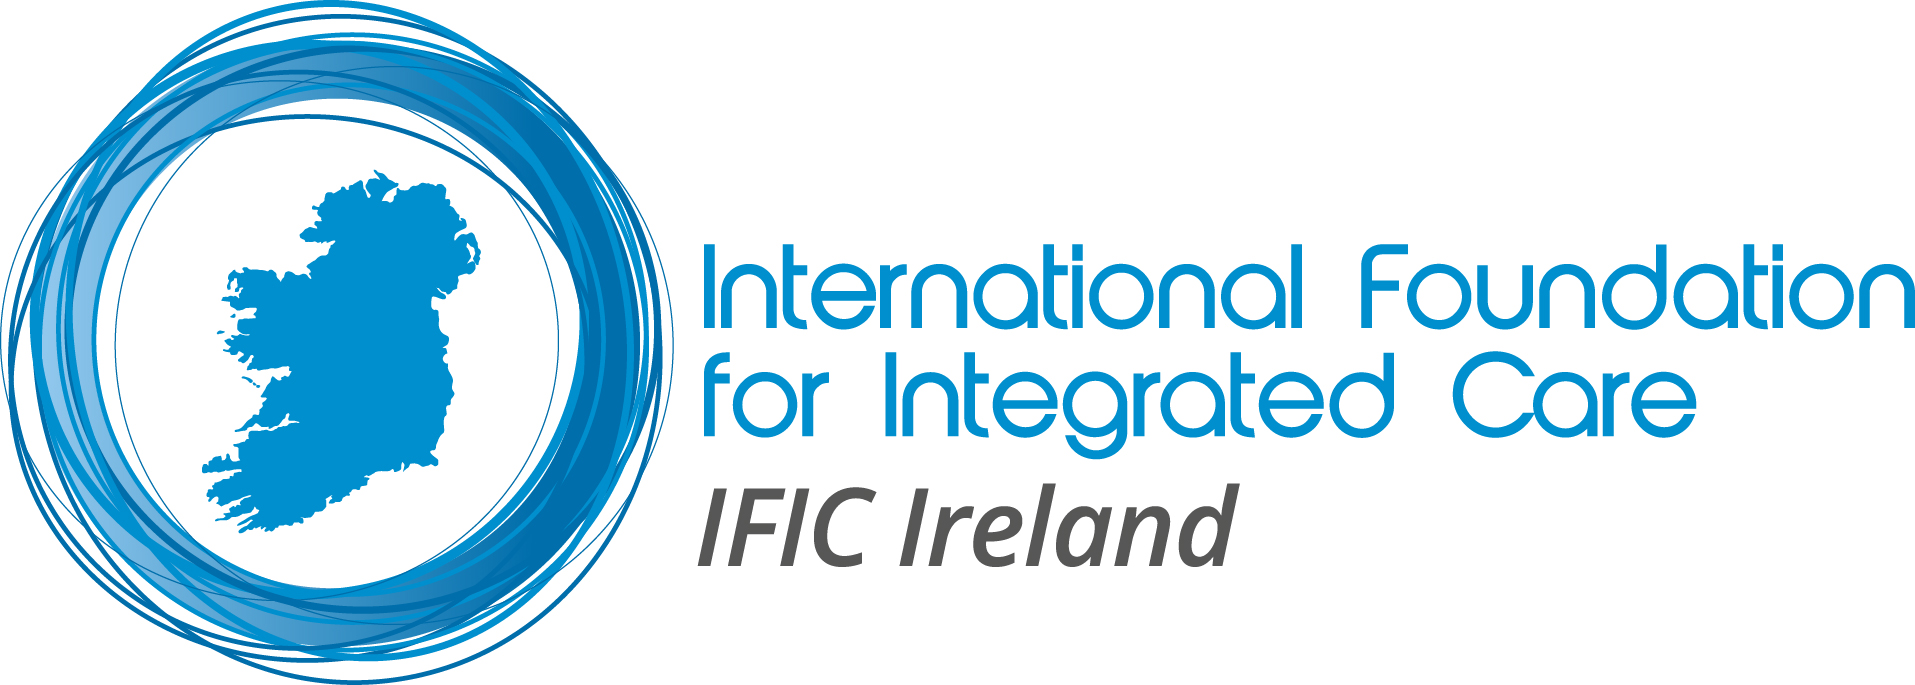 The International Foundation for Integrated Care IFIC